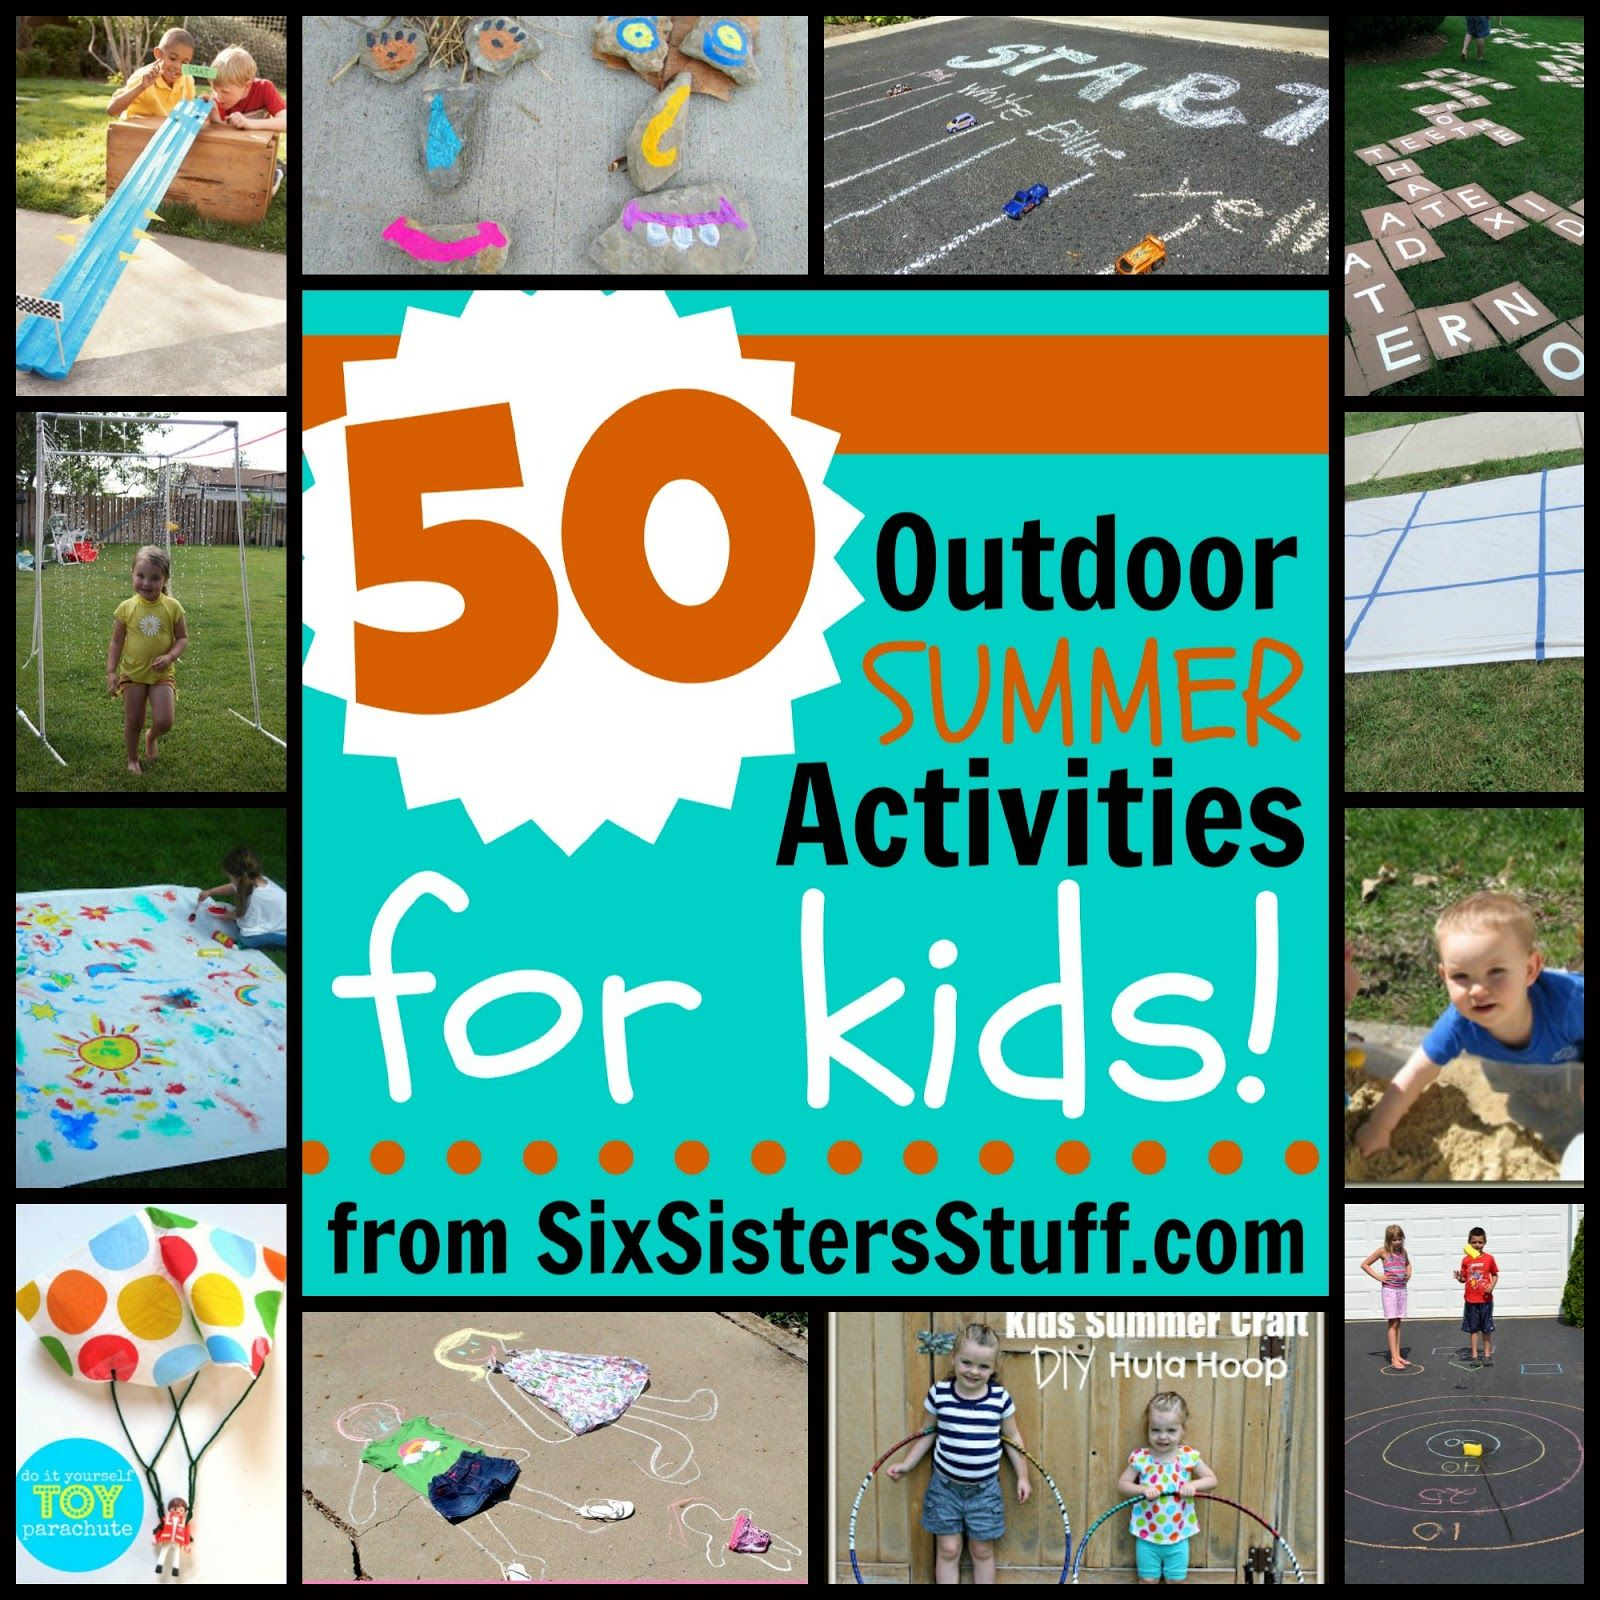 50 Outdoor Games To Diy This Summer: Are Things Getting A Little Crazy Around The House? Check